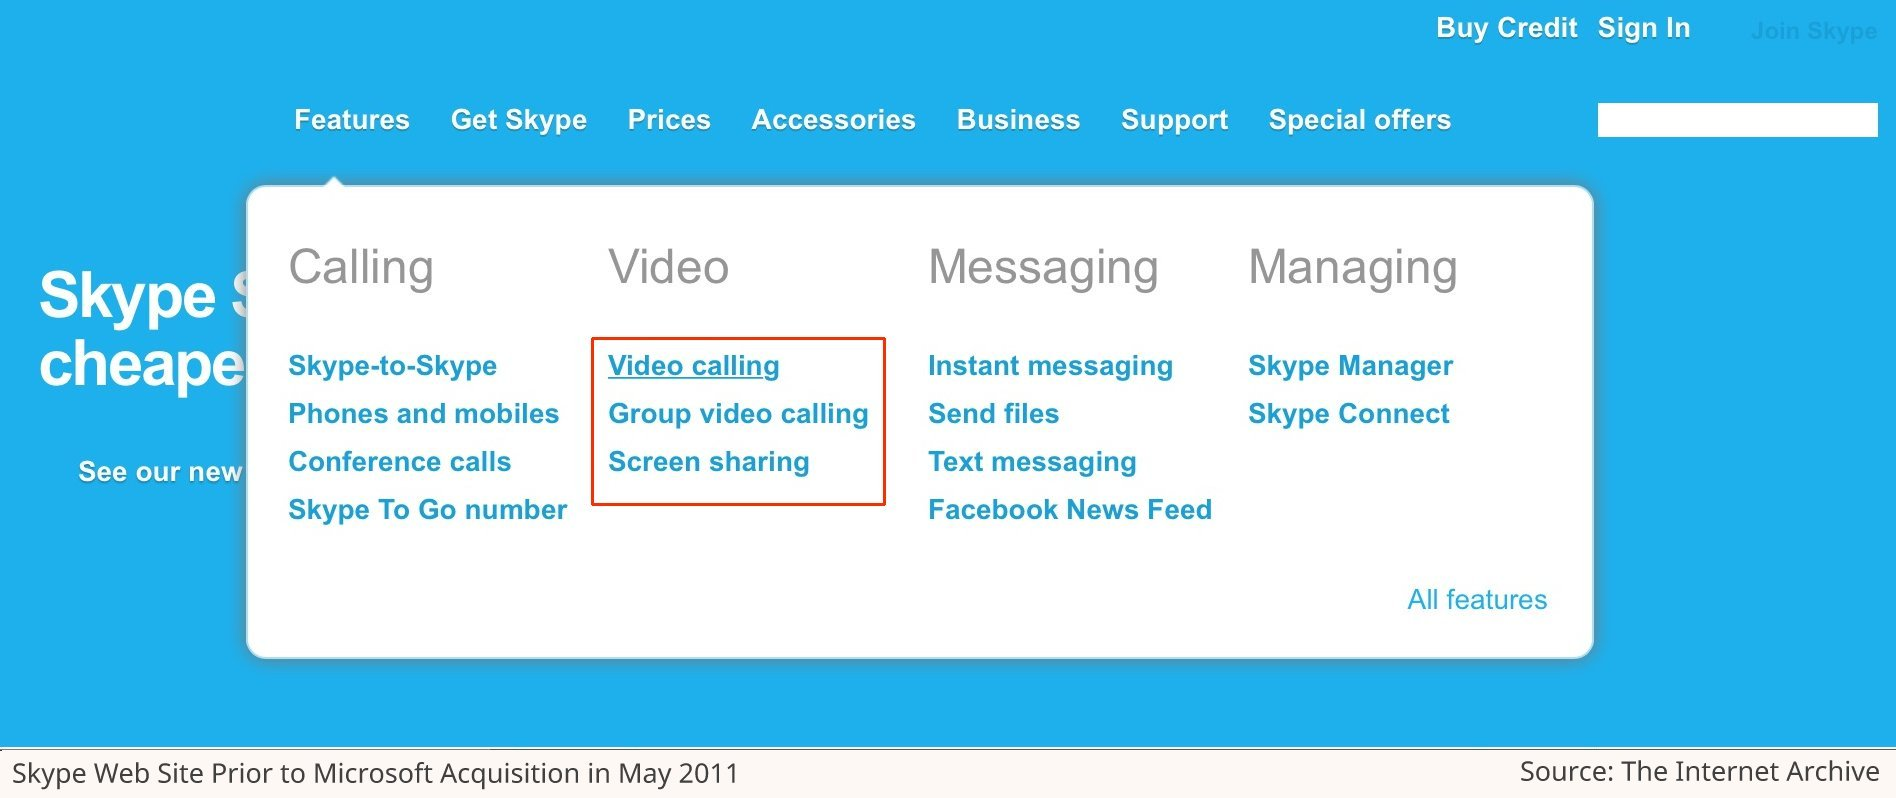 The Main Features of Skype Just Prior to Microsoft Acquisition